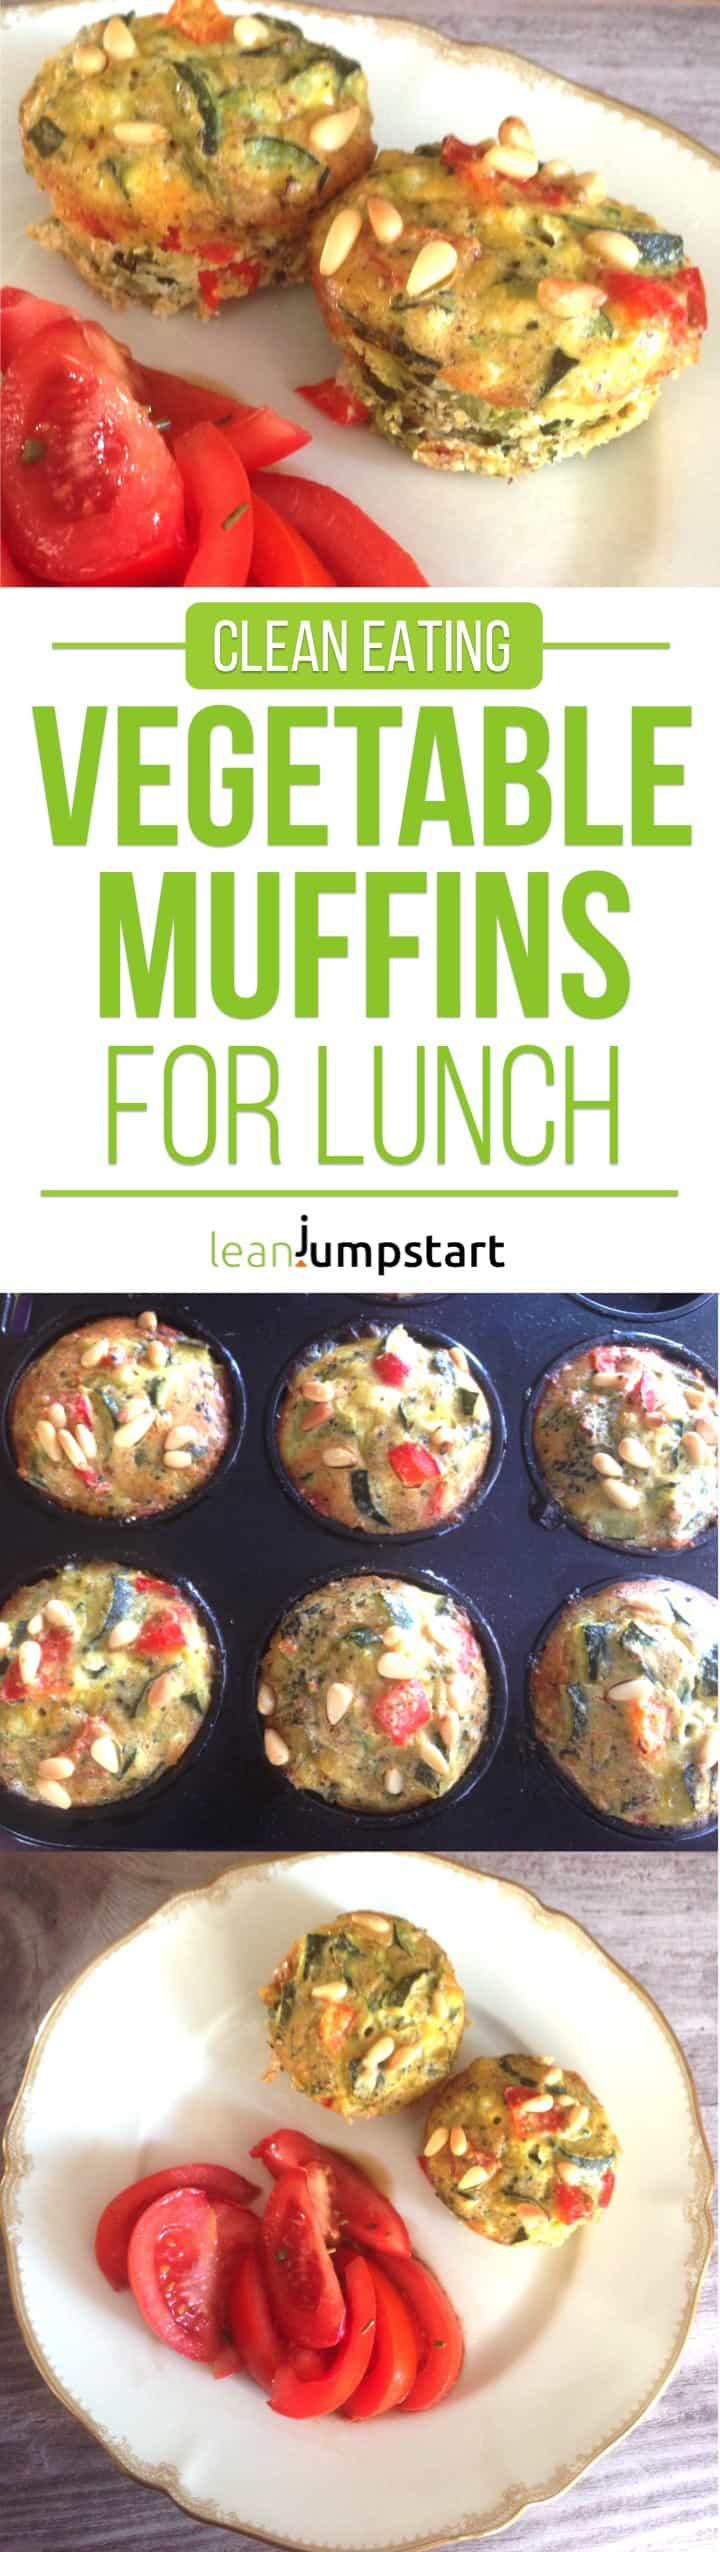 egg muffins recipe: healthy and clean. Click through!